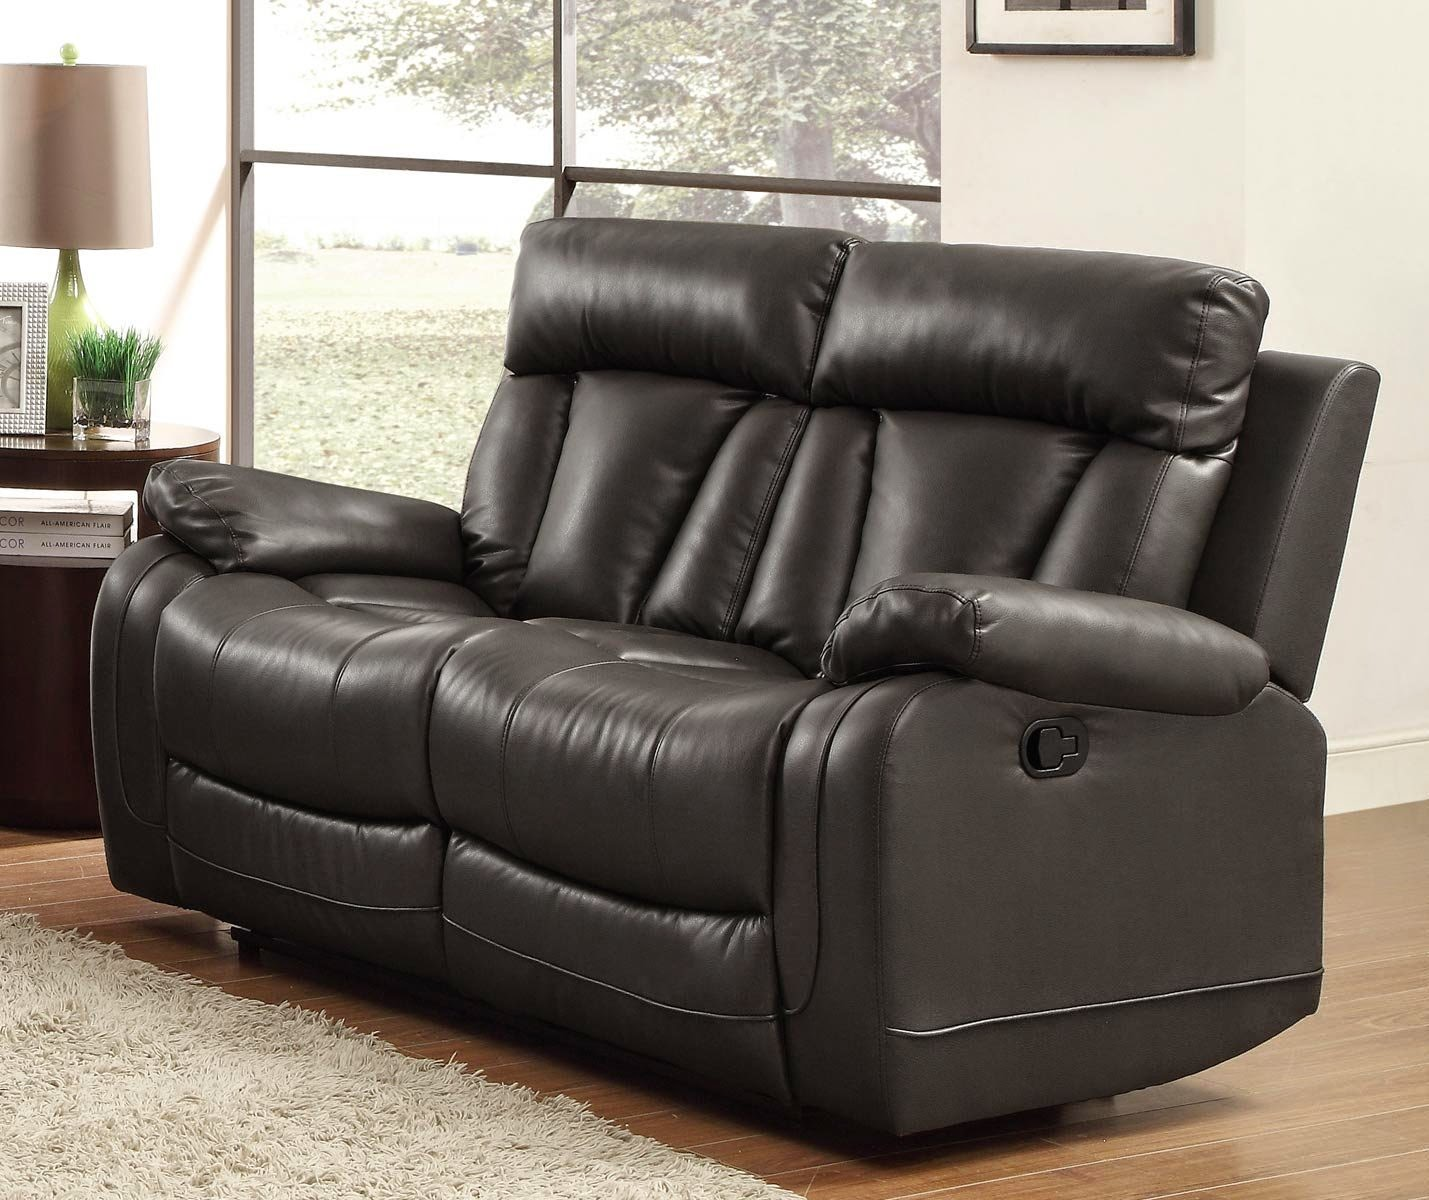 Cheap Recliner Sofas For Sale: Black Leather Reclining